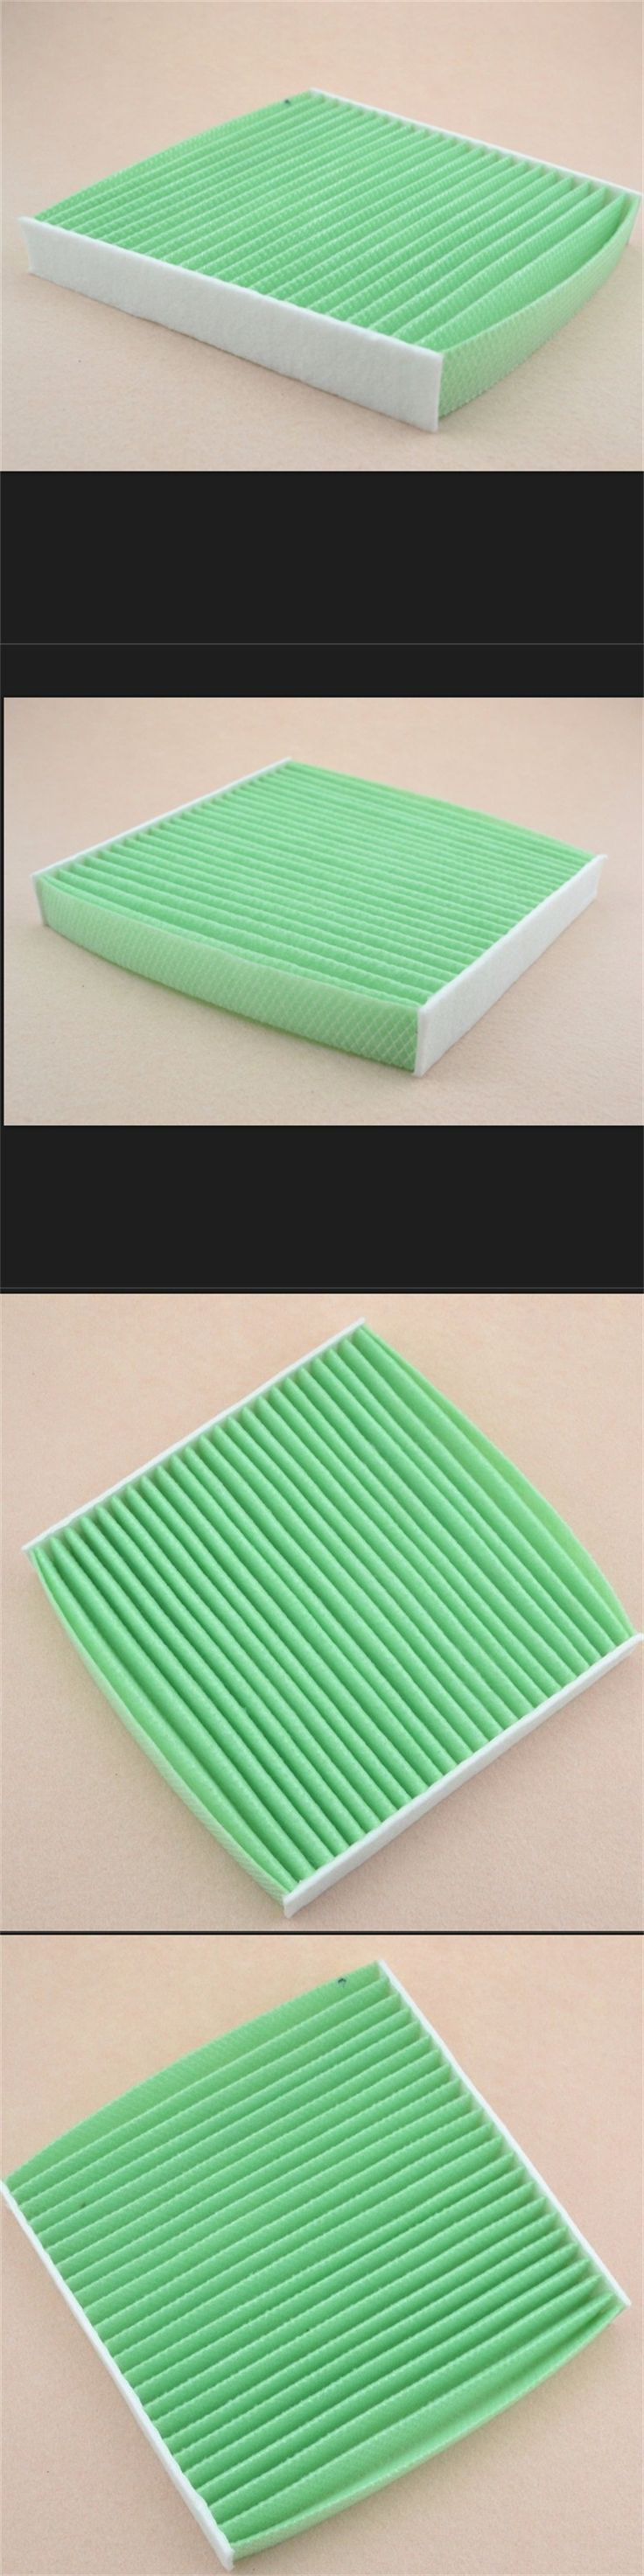 BBQ@FUKA 1 pcs New Auto Car Cabin Air Filter 80291-TF0-E01 Green Fit for Honda Insight  CR-Z Car Accessories OEM High Quality